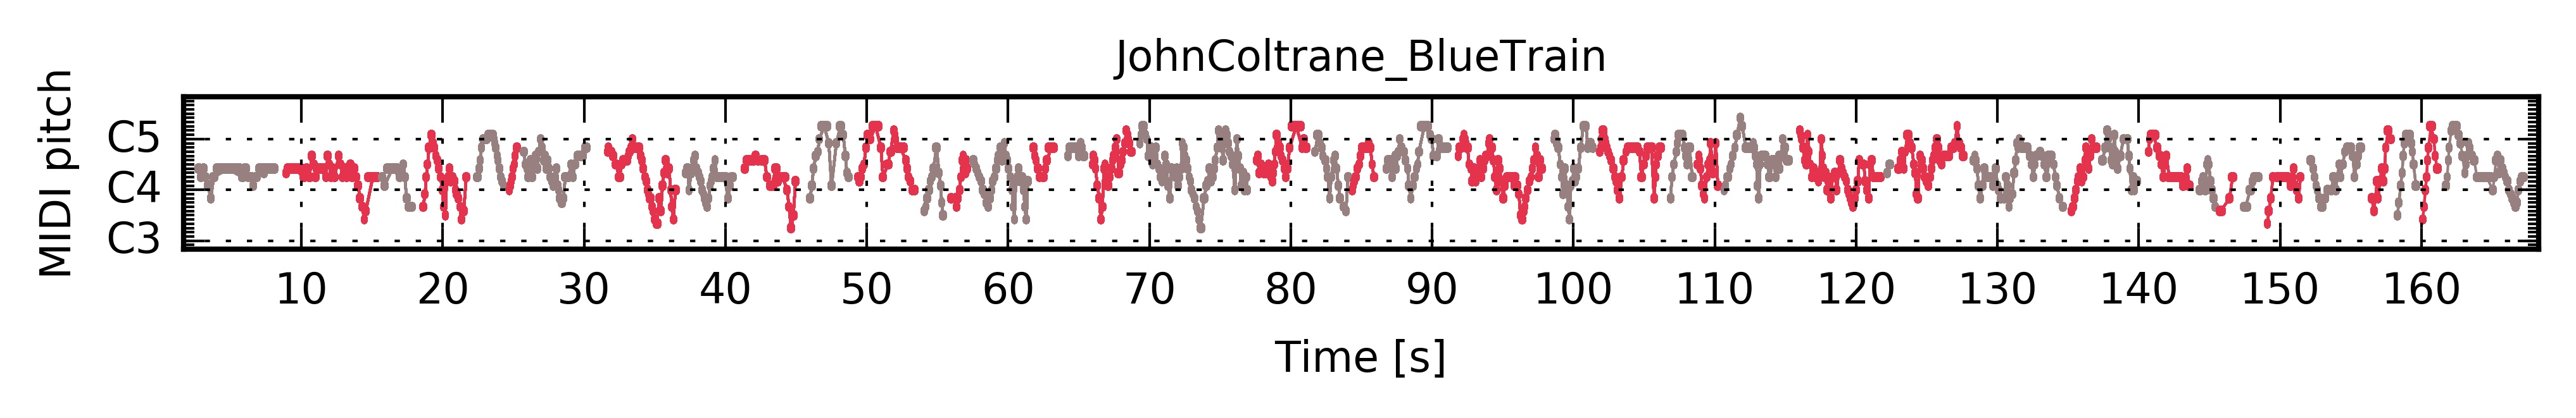 ../../_images/PianoRoll_JohnColtrane_BlueTrain.jpg